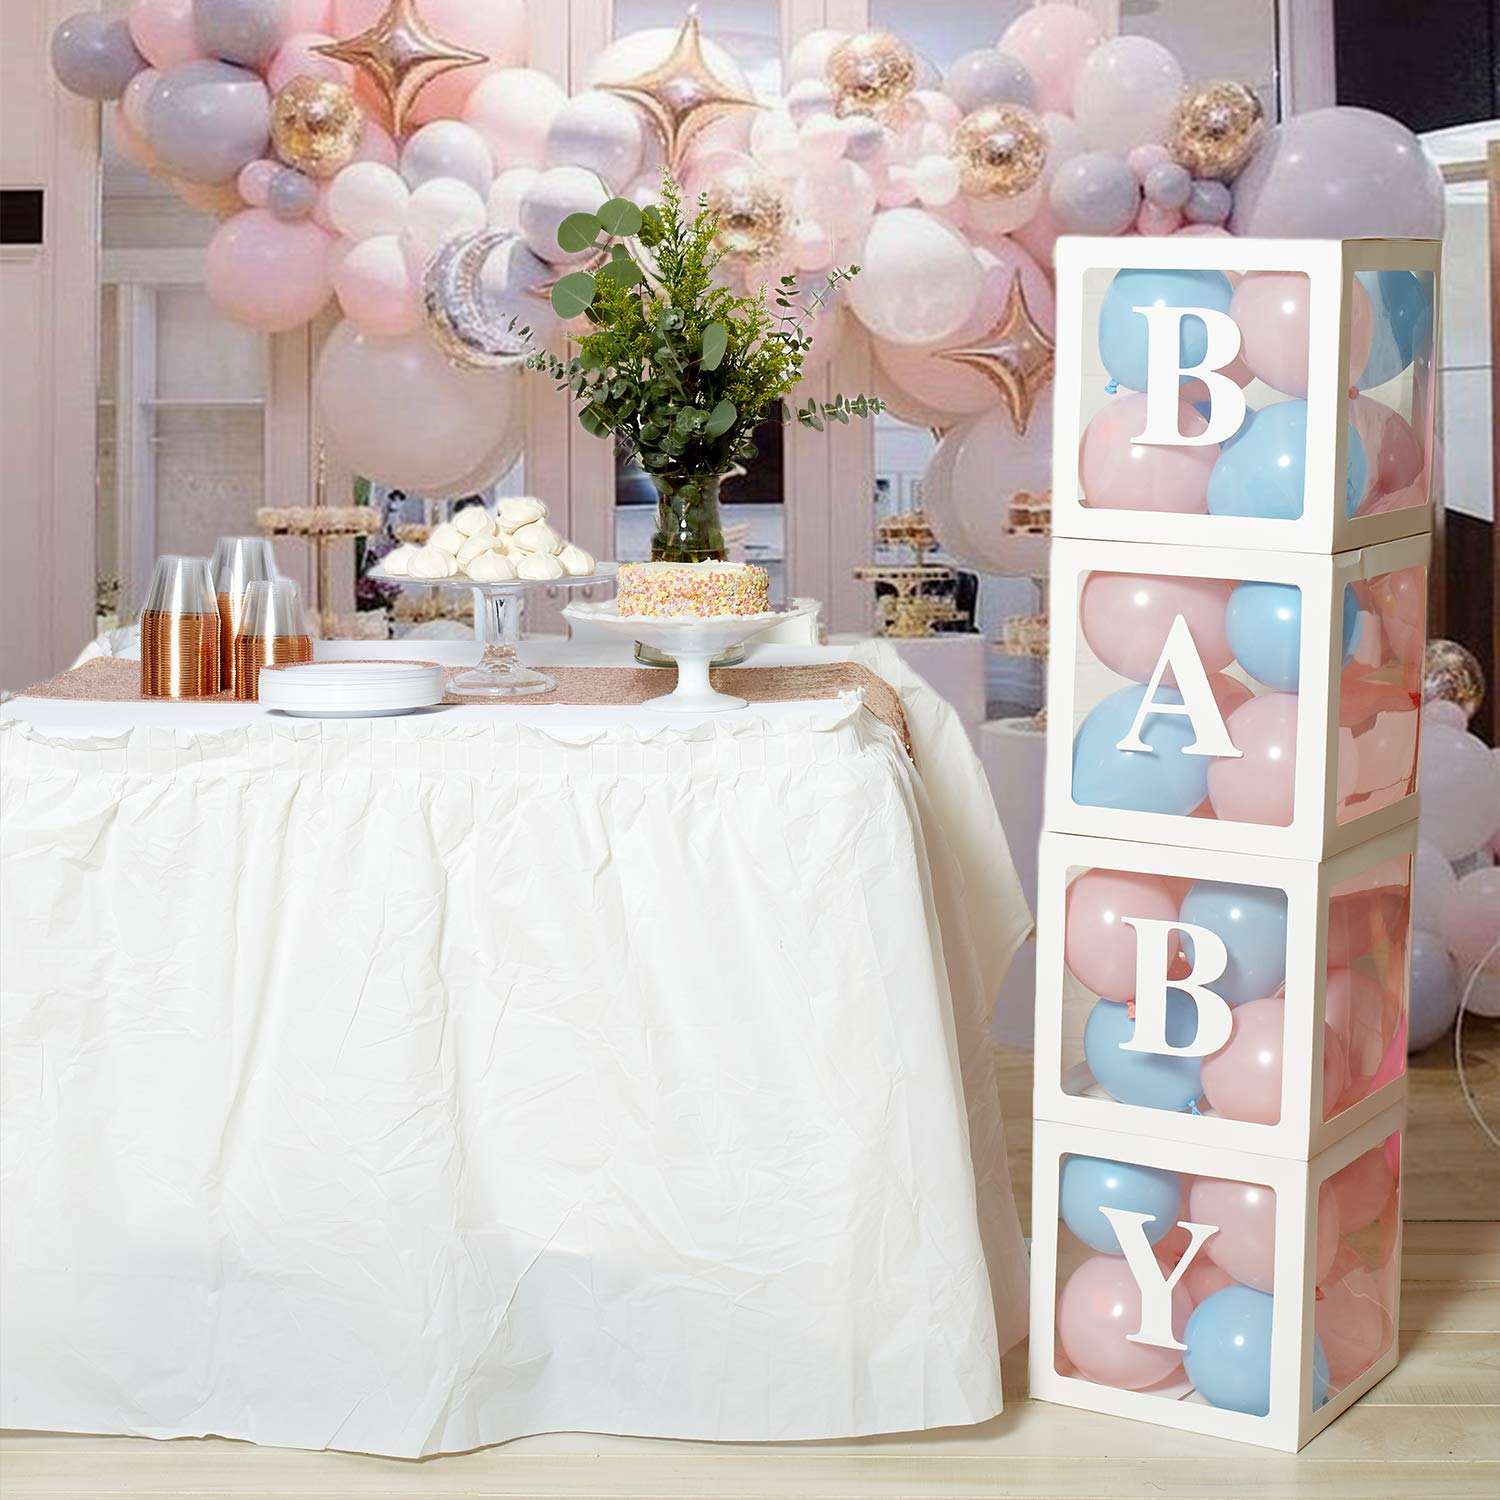 Kitveda 40 Piece Transparent Baby Shower Boxes Includes 32 Balloons Gender Reveal Parties Baby Shower Decorations for Boy Perfect for Baby Shower Decorations for Girl Baby First Birthday party